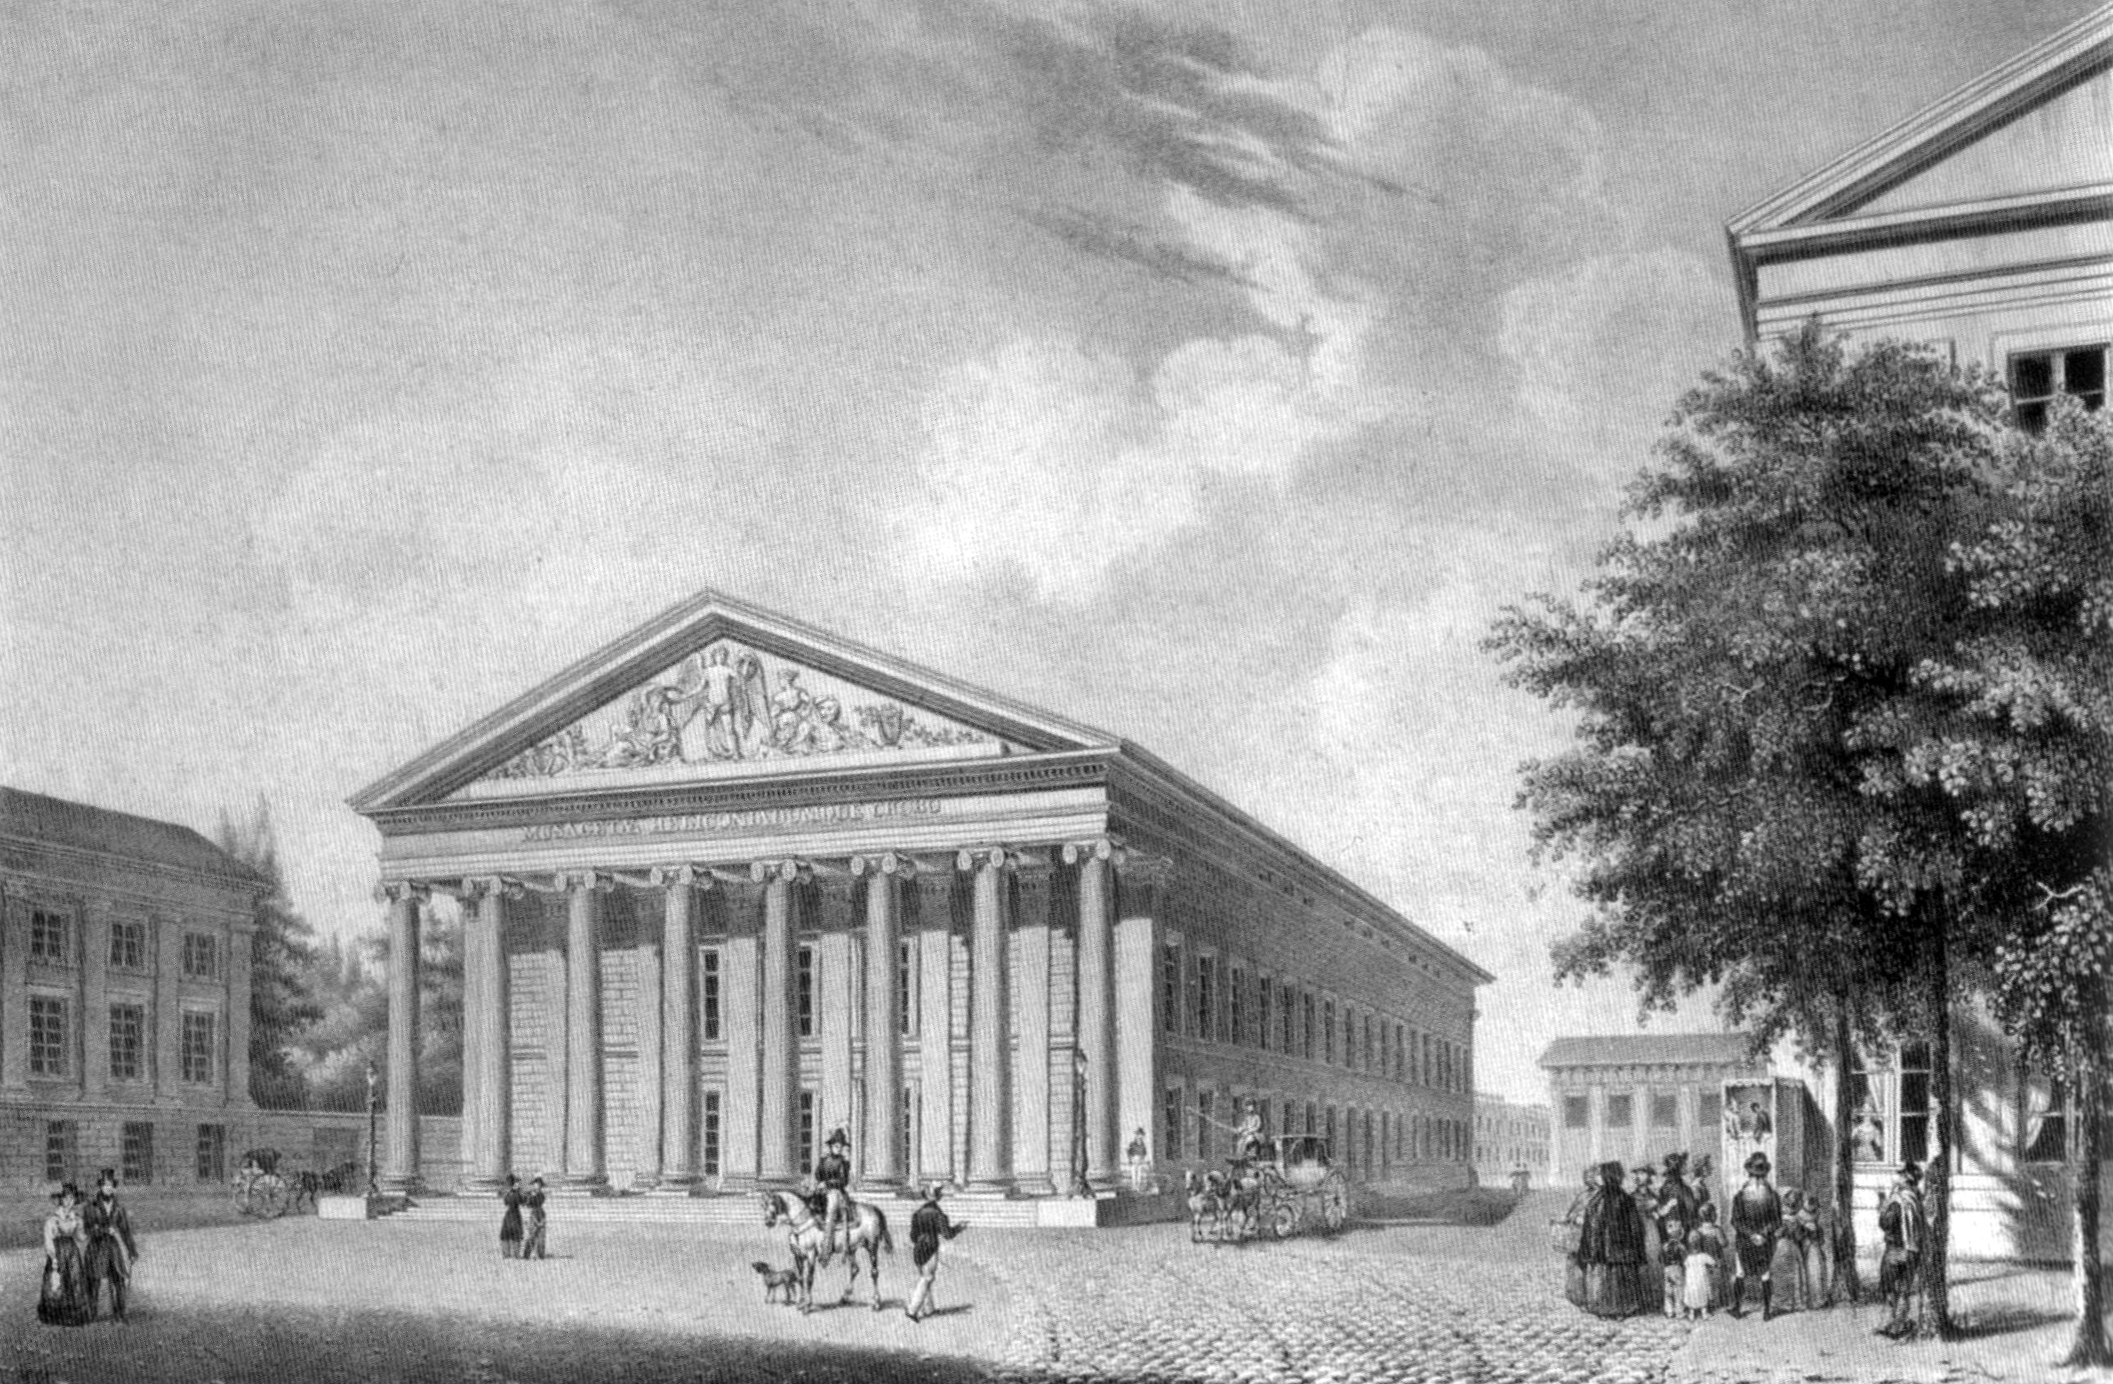 File:Theater ponsart 1826.jpg